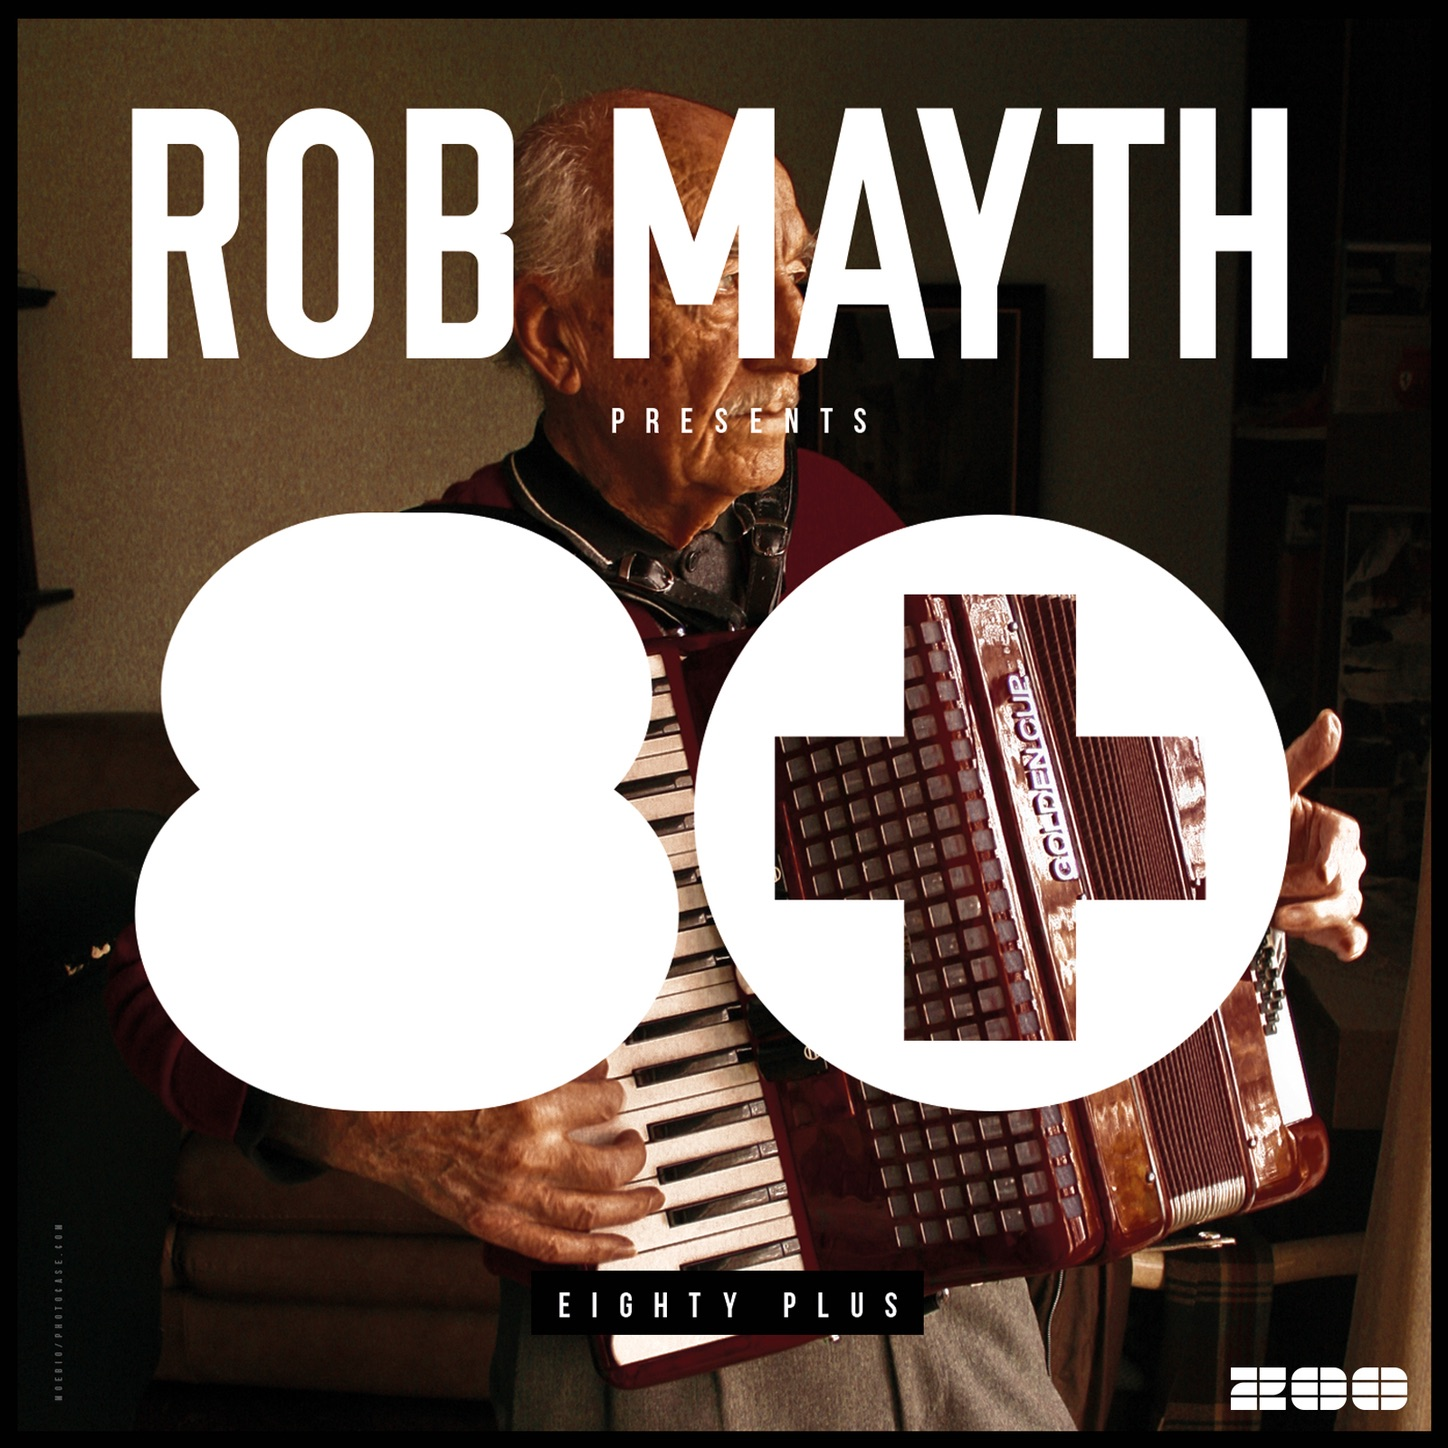 Come with Me (Rob Mayth Radio Edit) by Special D.